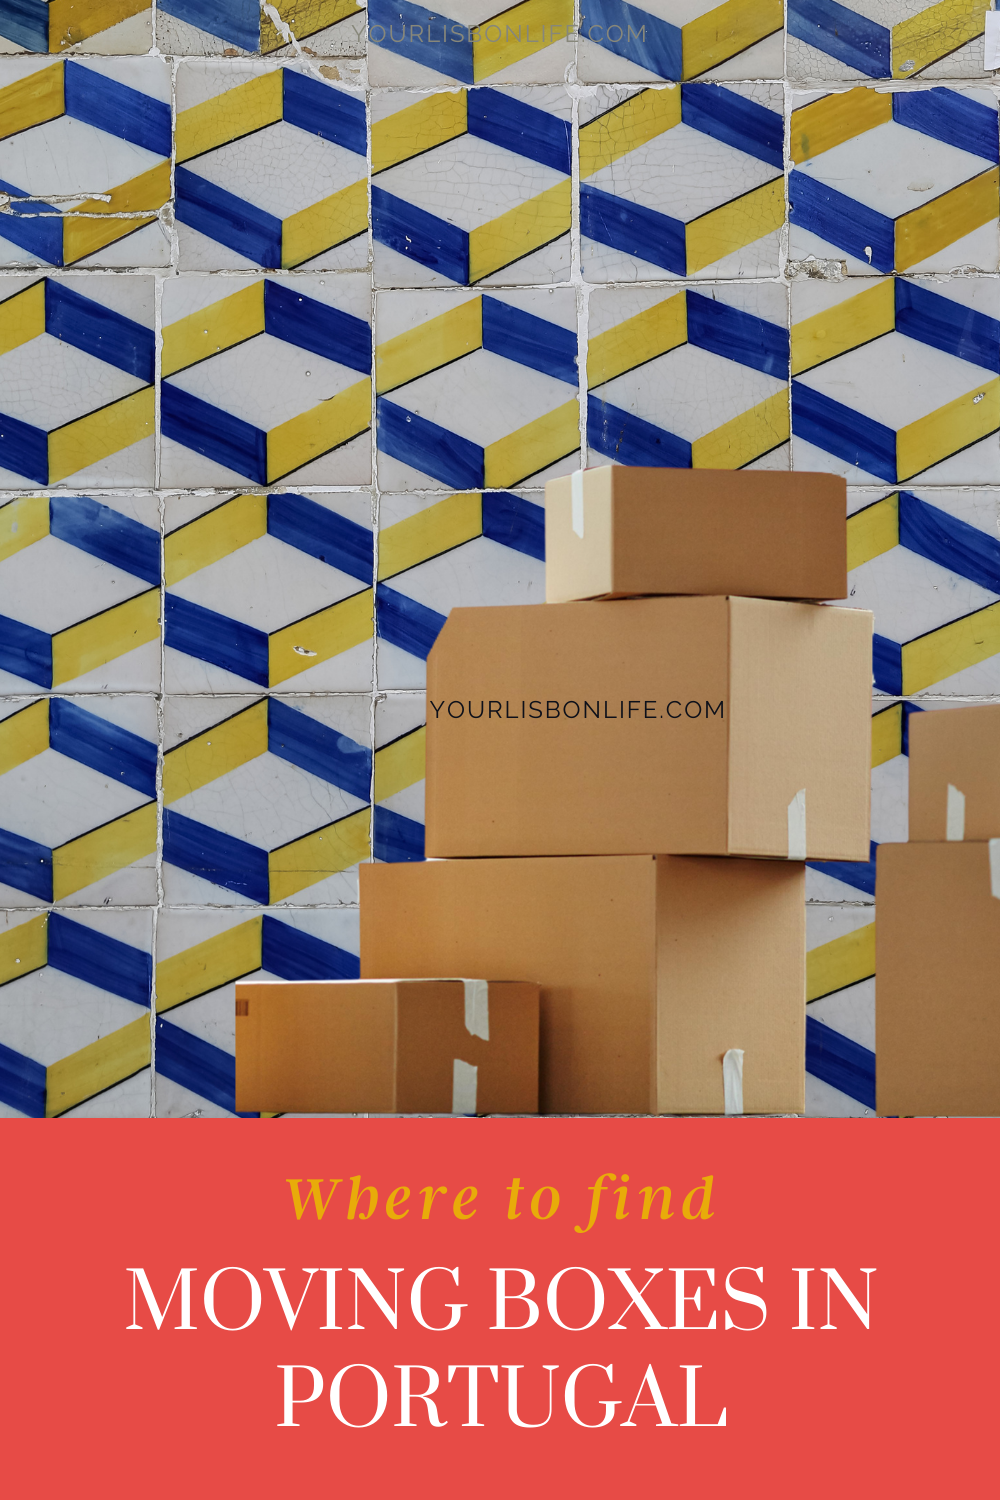 Where to Find Moving Boxes in Portugal